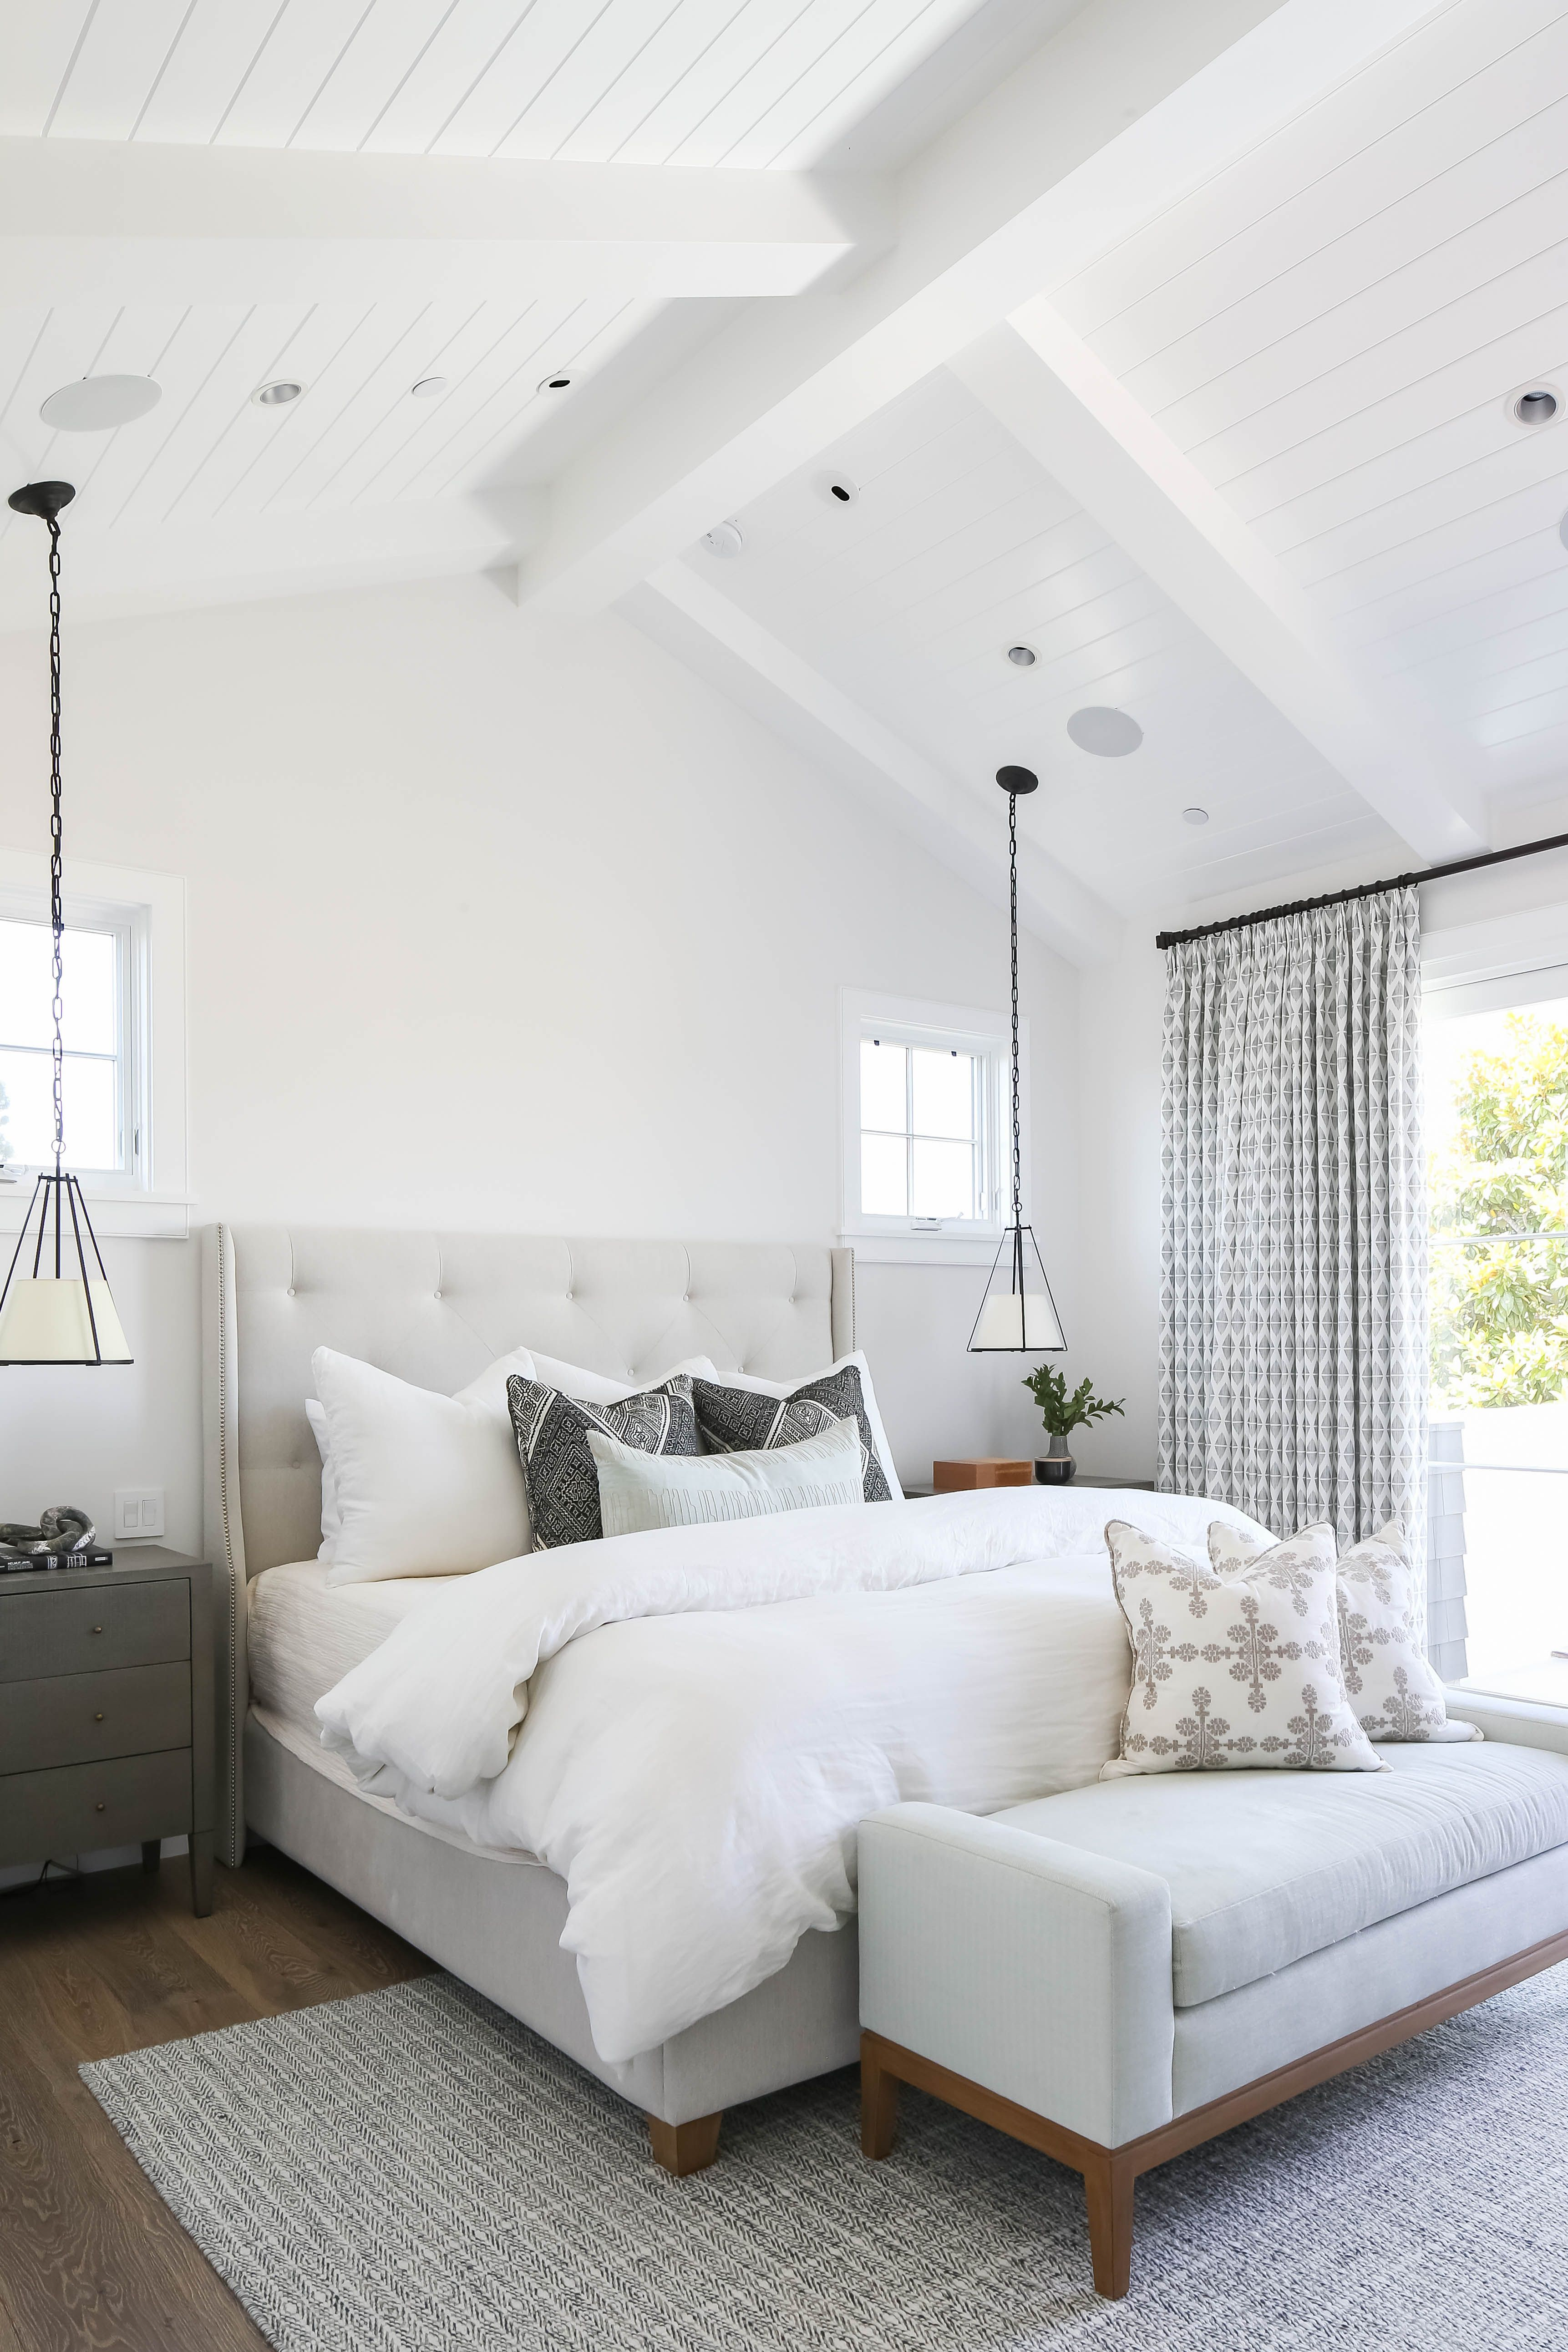 Home Reveal Project Port Margate Master Bedrooms Decor Bedroom Interior Home Decor Bedroom